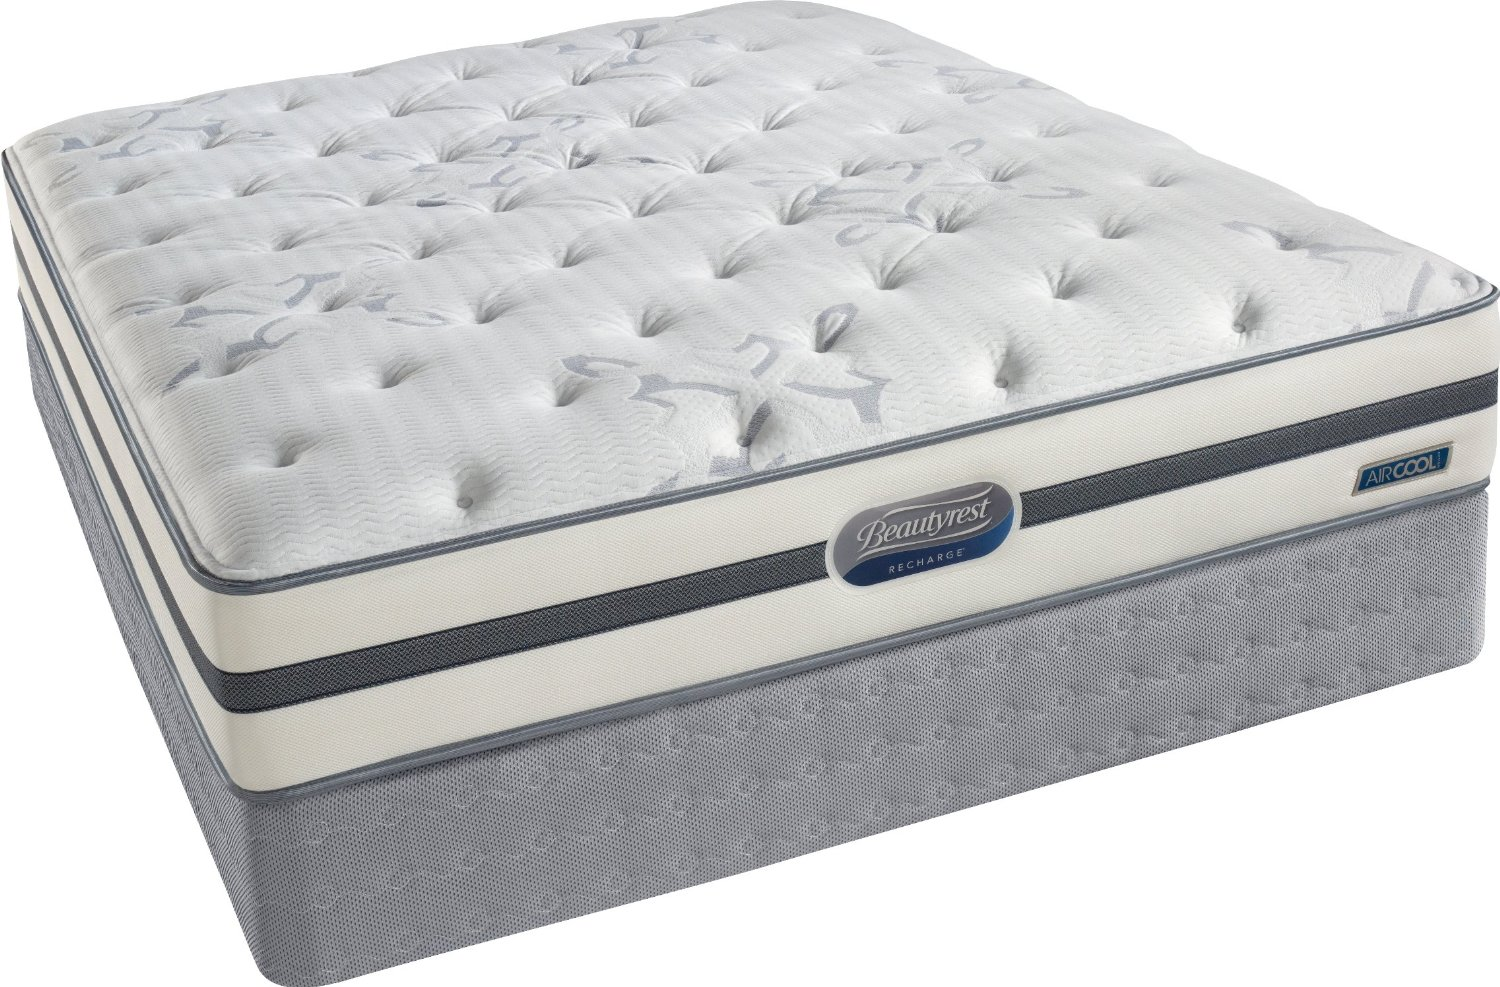 Top 10 Best Mattresses under $1000 of 2017